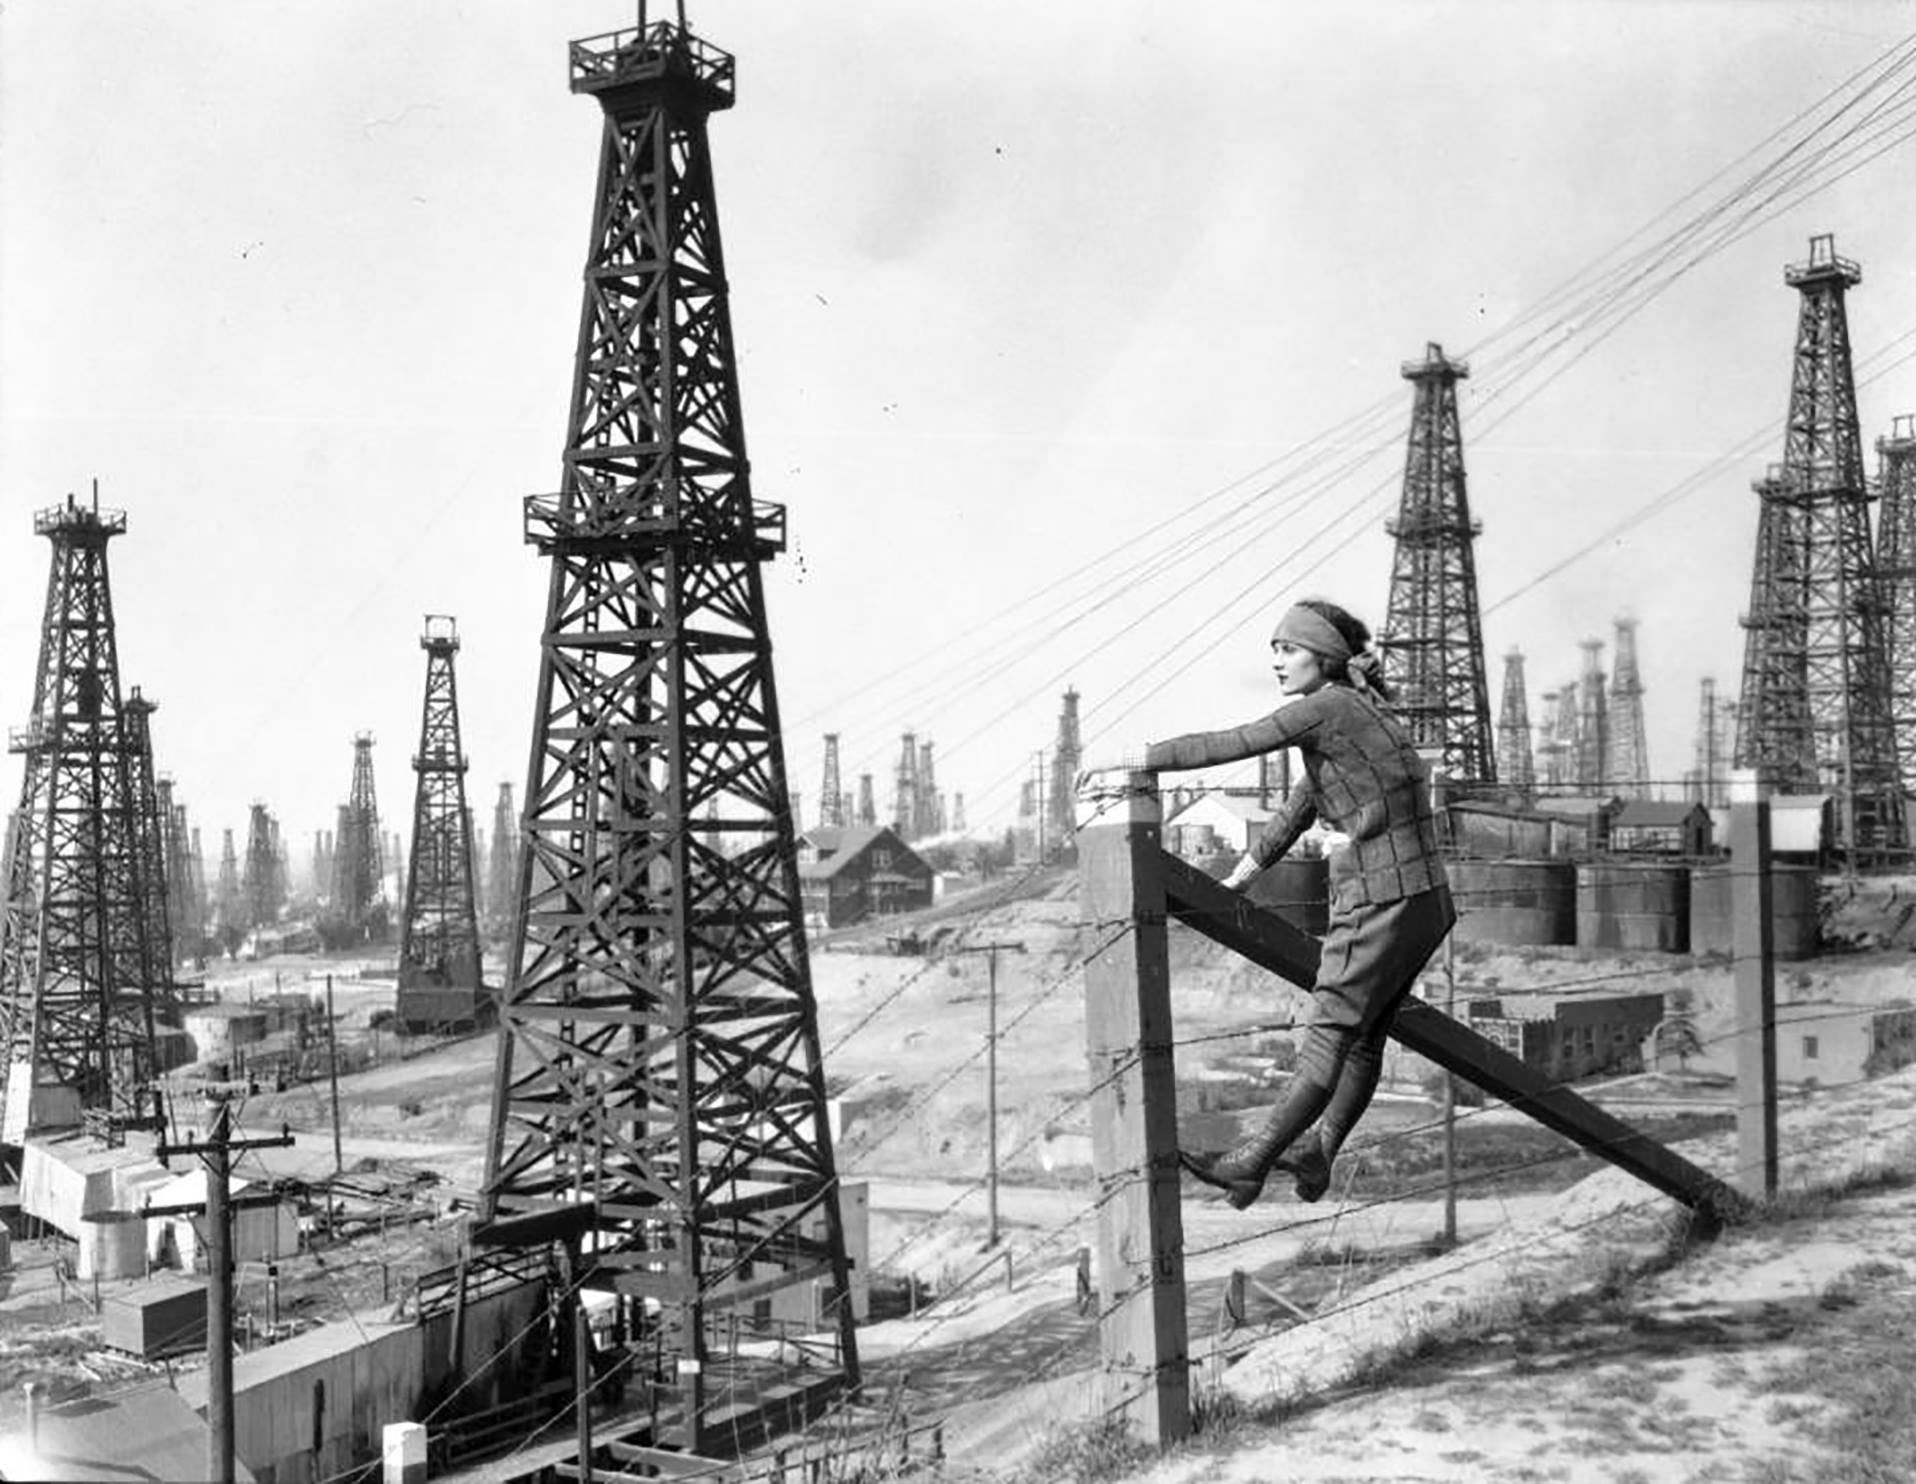 ca 1930s view showing a woman posing on a fence at the signal hill oil field